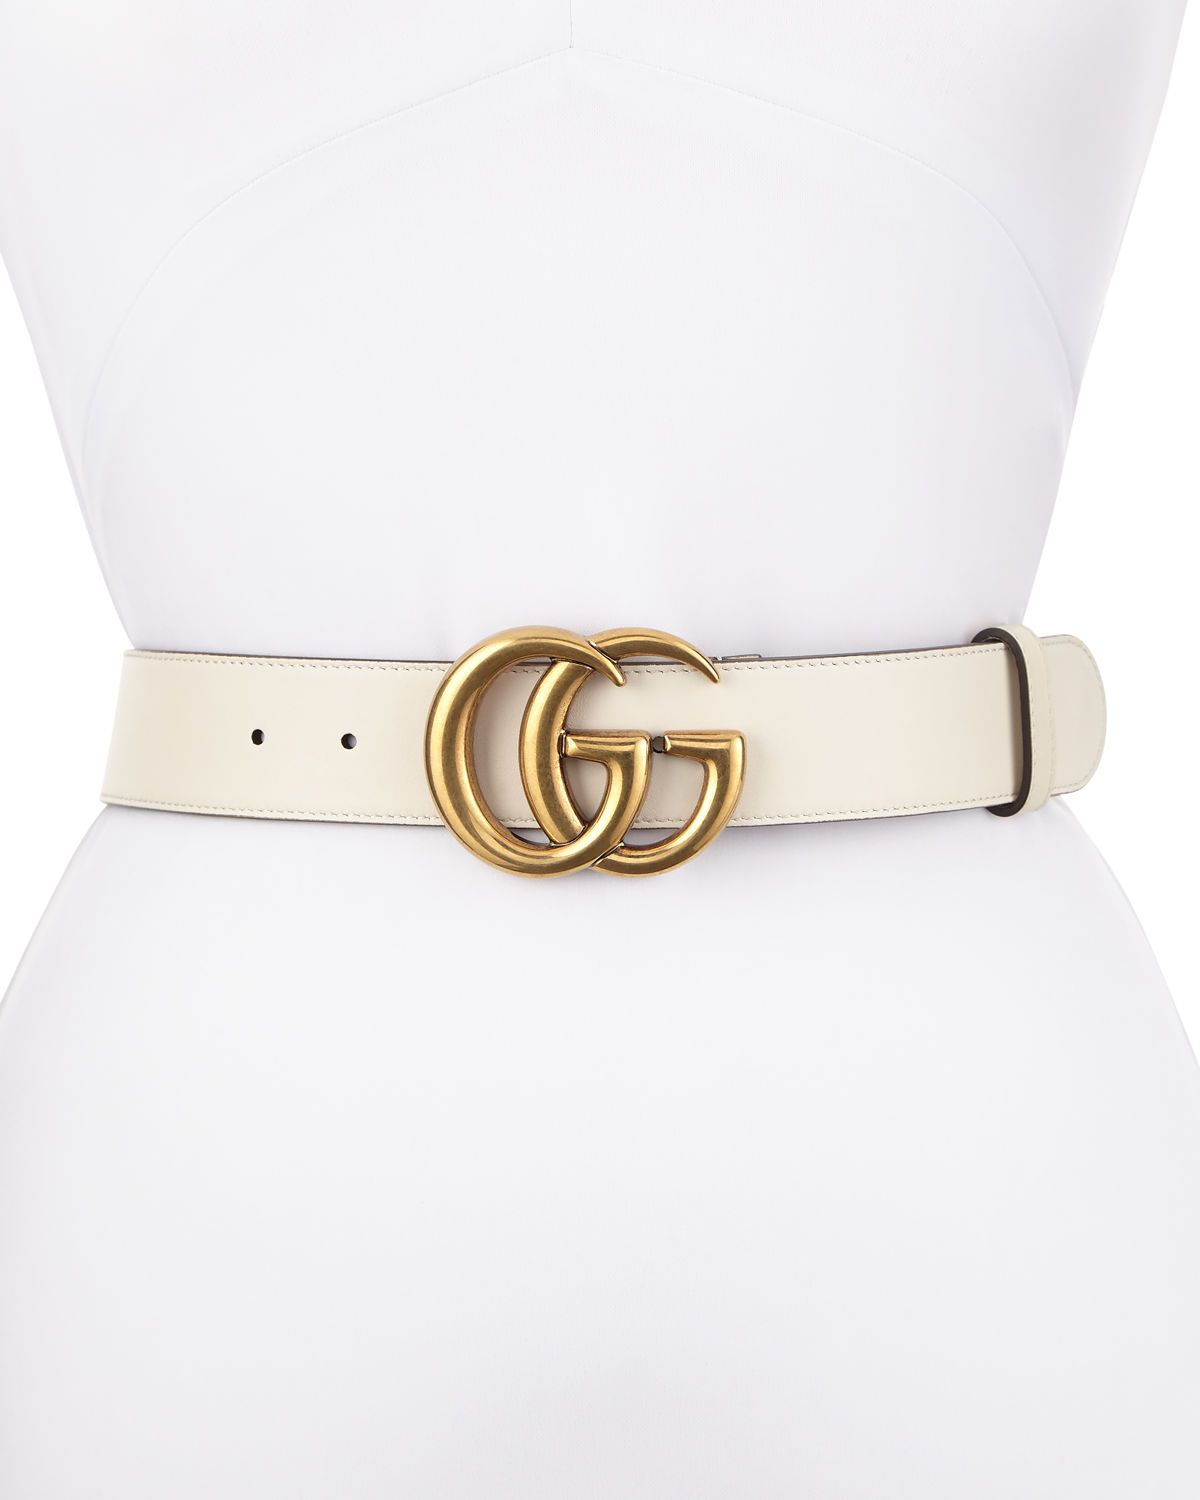 017ce5e1ca10 Gucci Leather Belt with GG Buckle | Gift ideas/wish list | Gucci ...